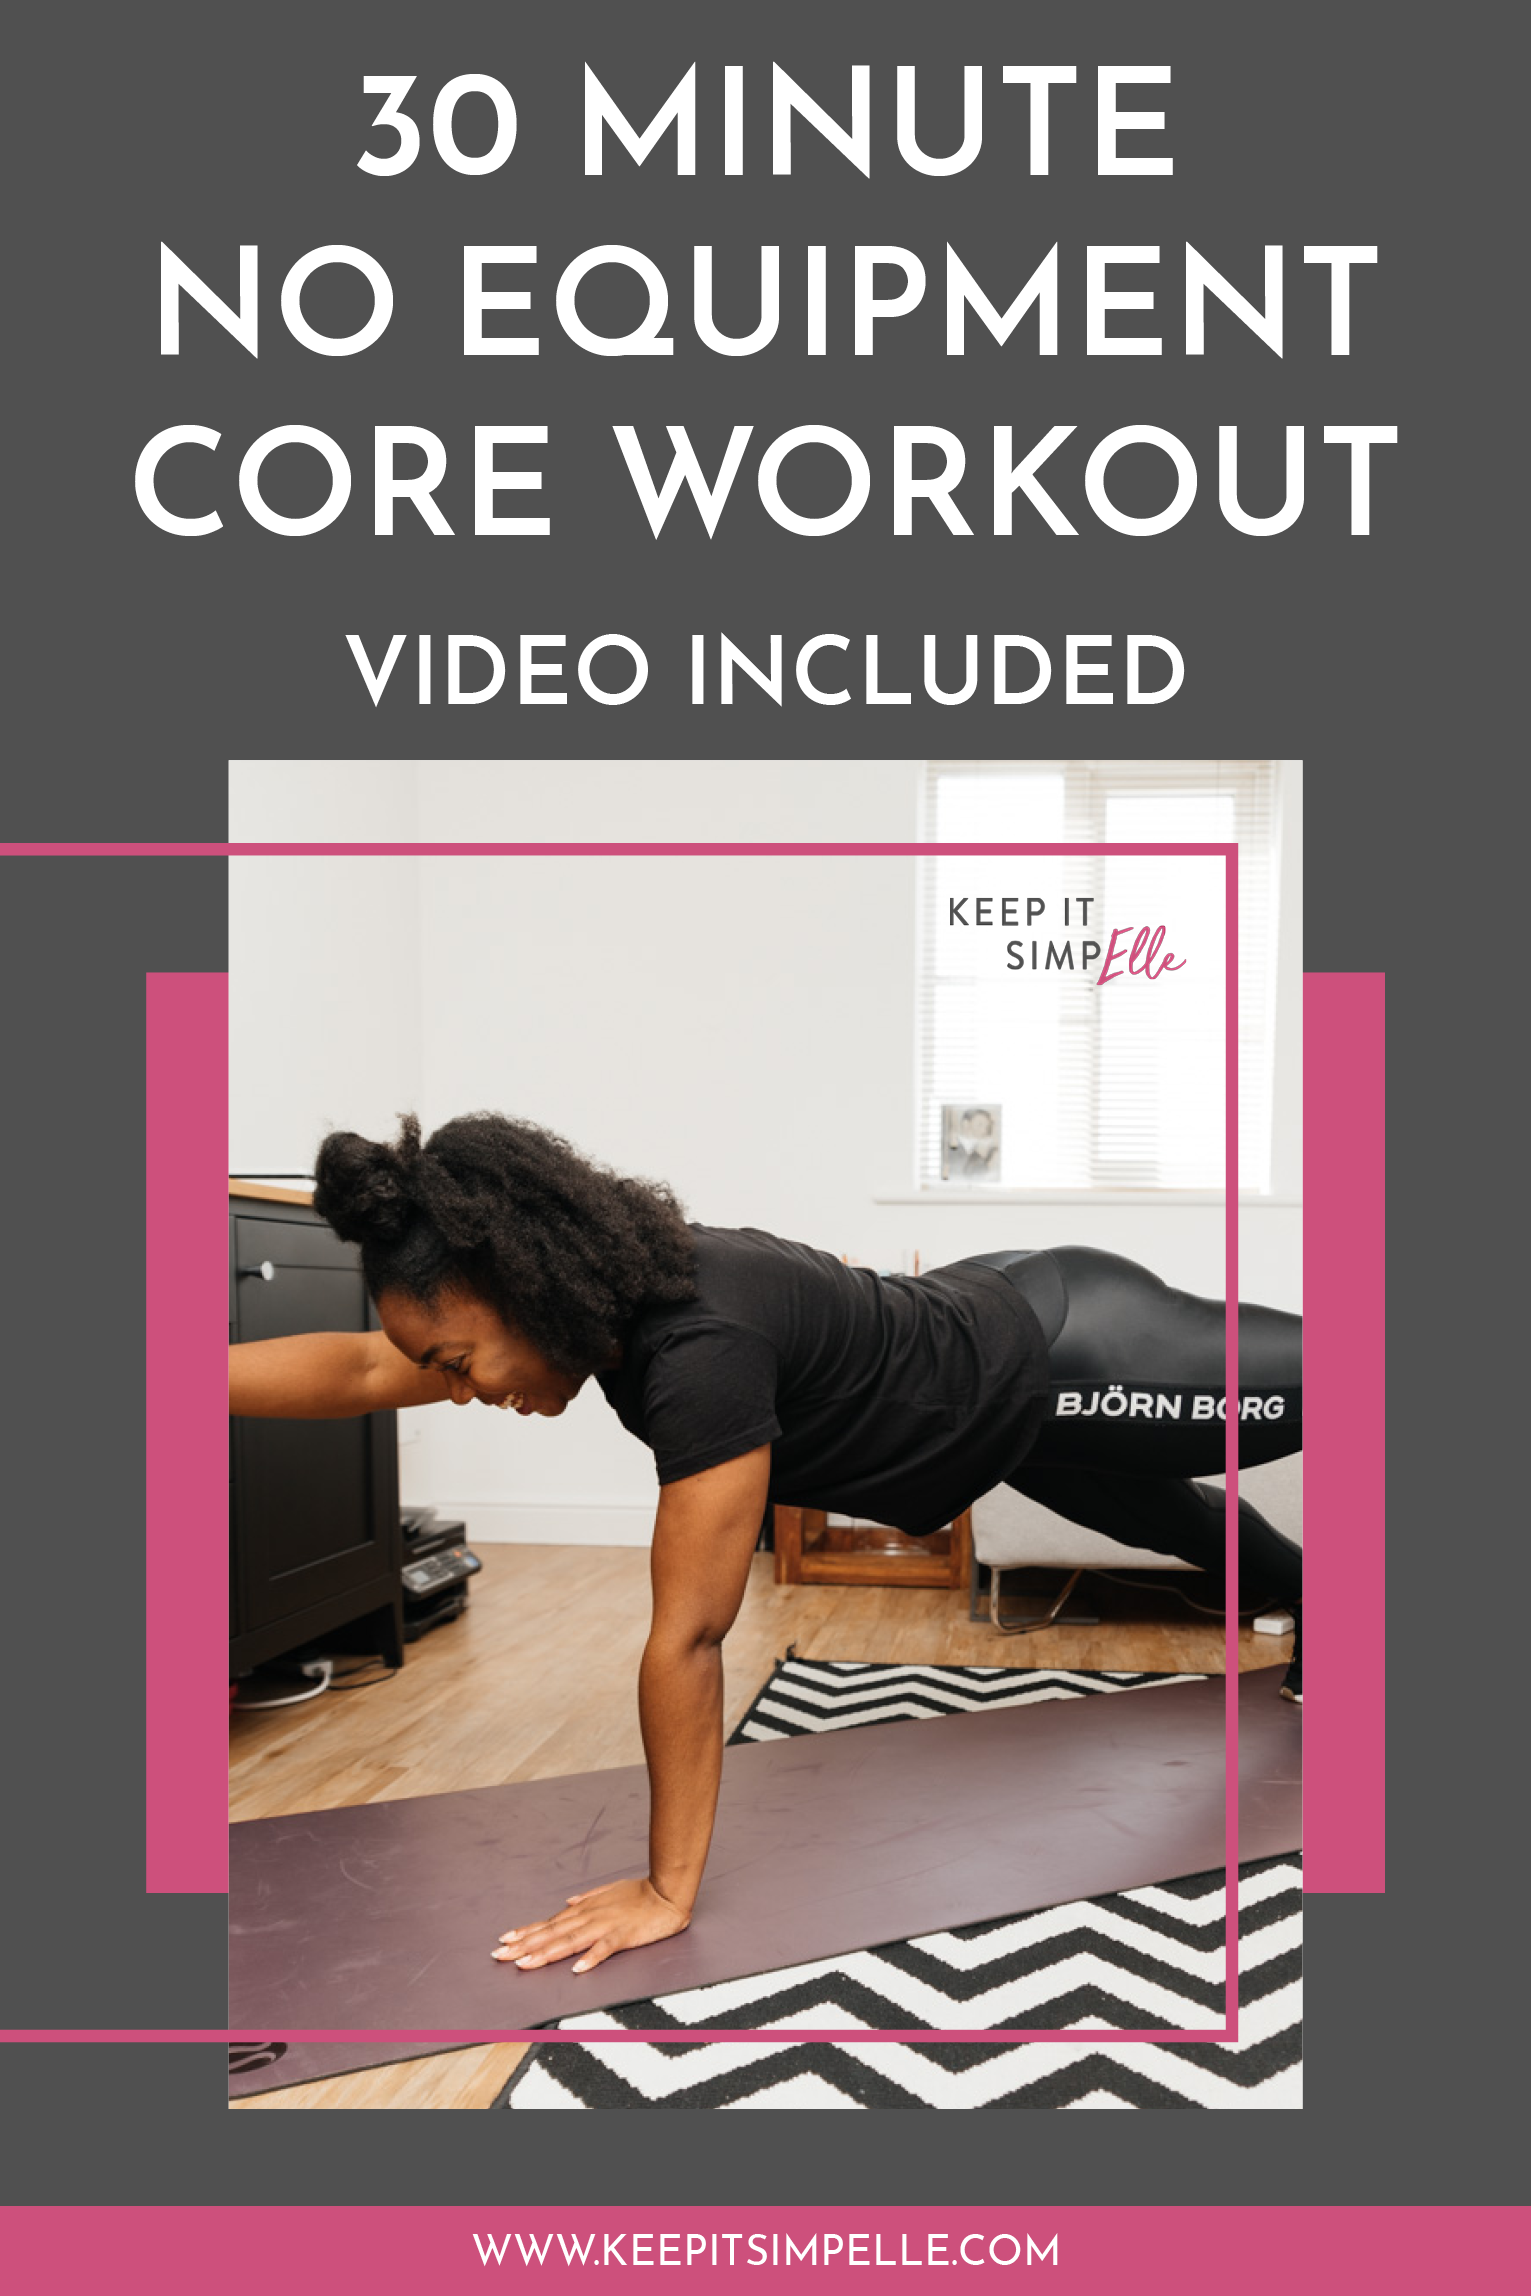 [Video] 30 minute No Equipment Core Workout - keep it simpElle